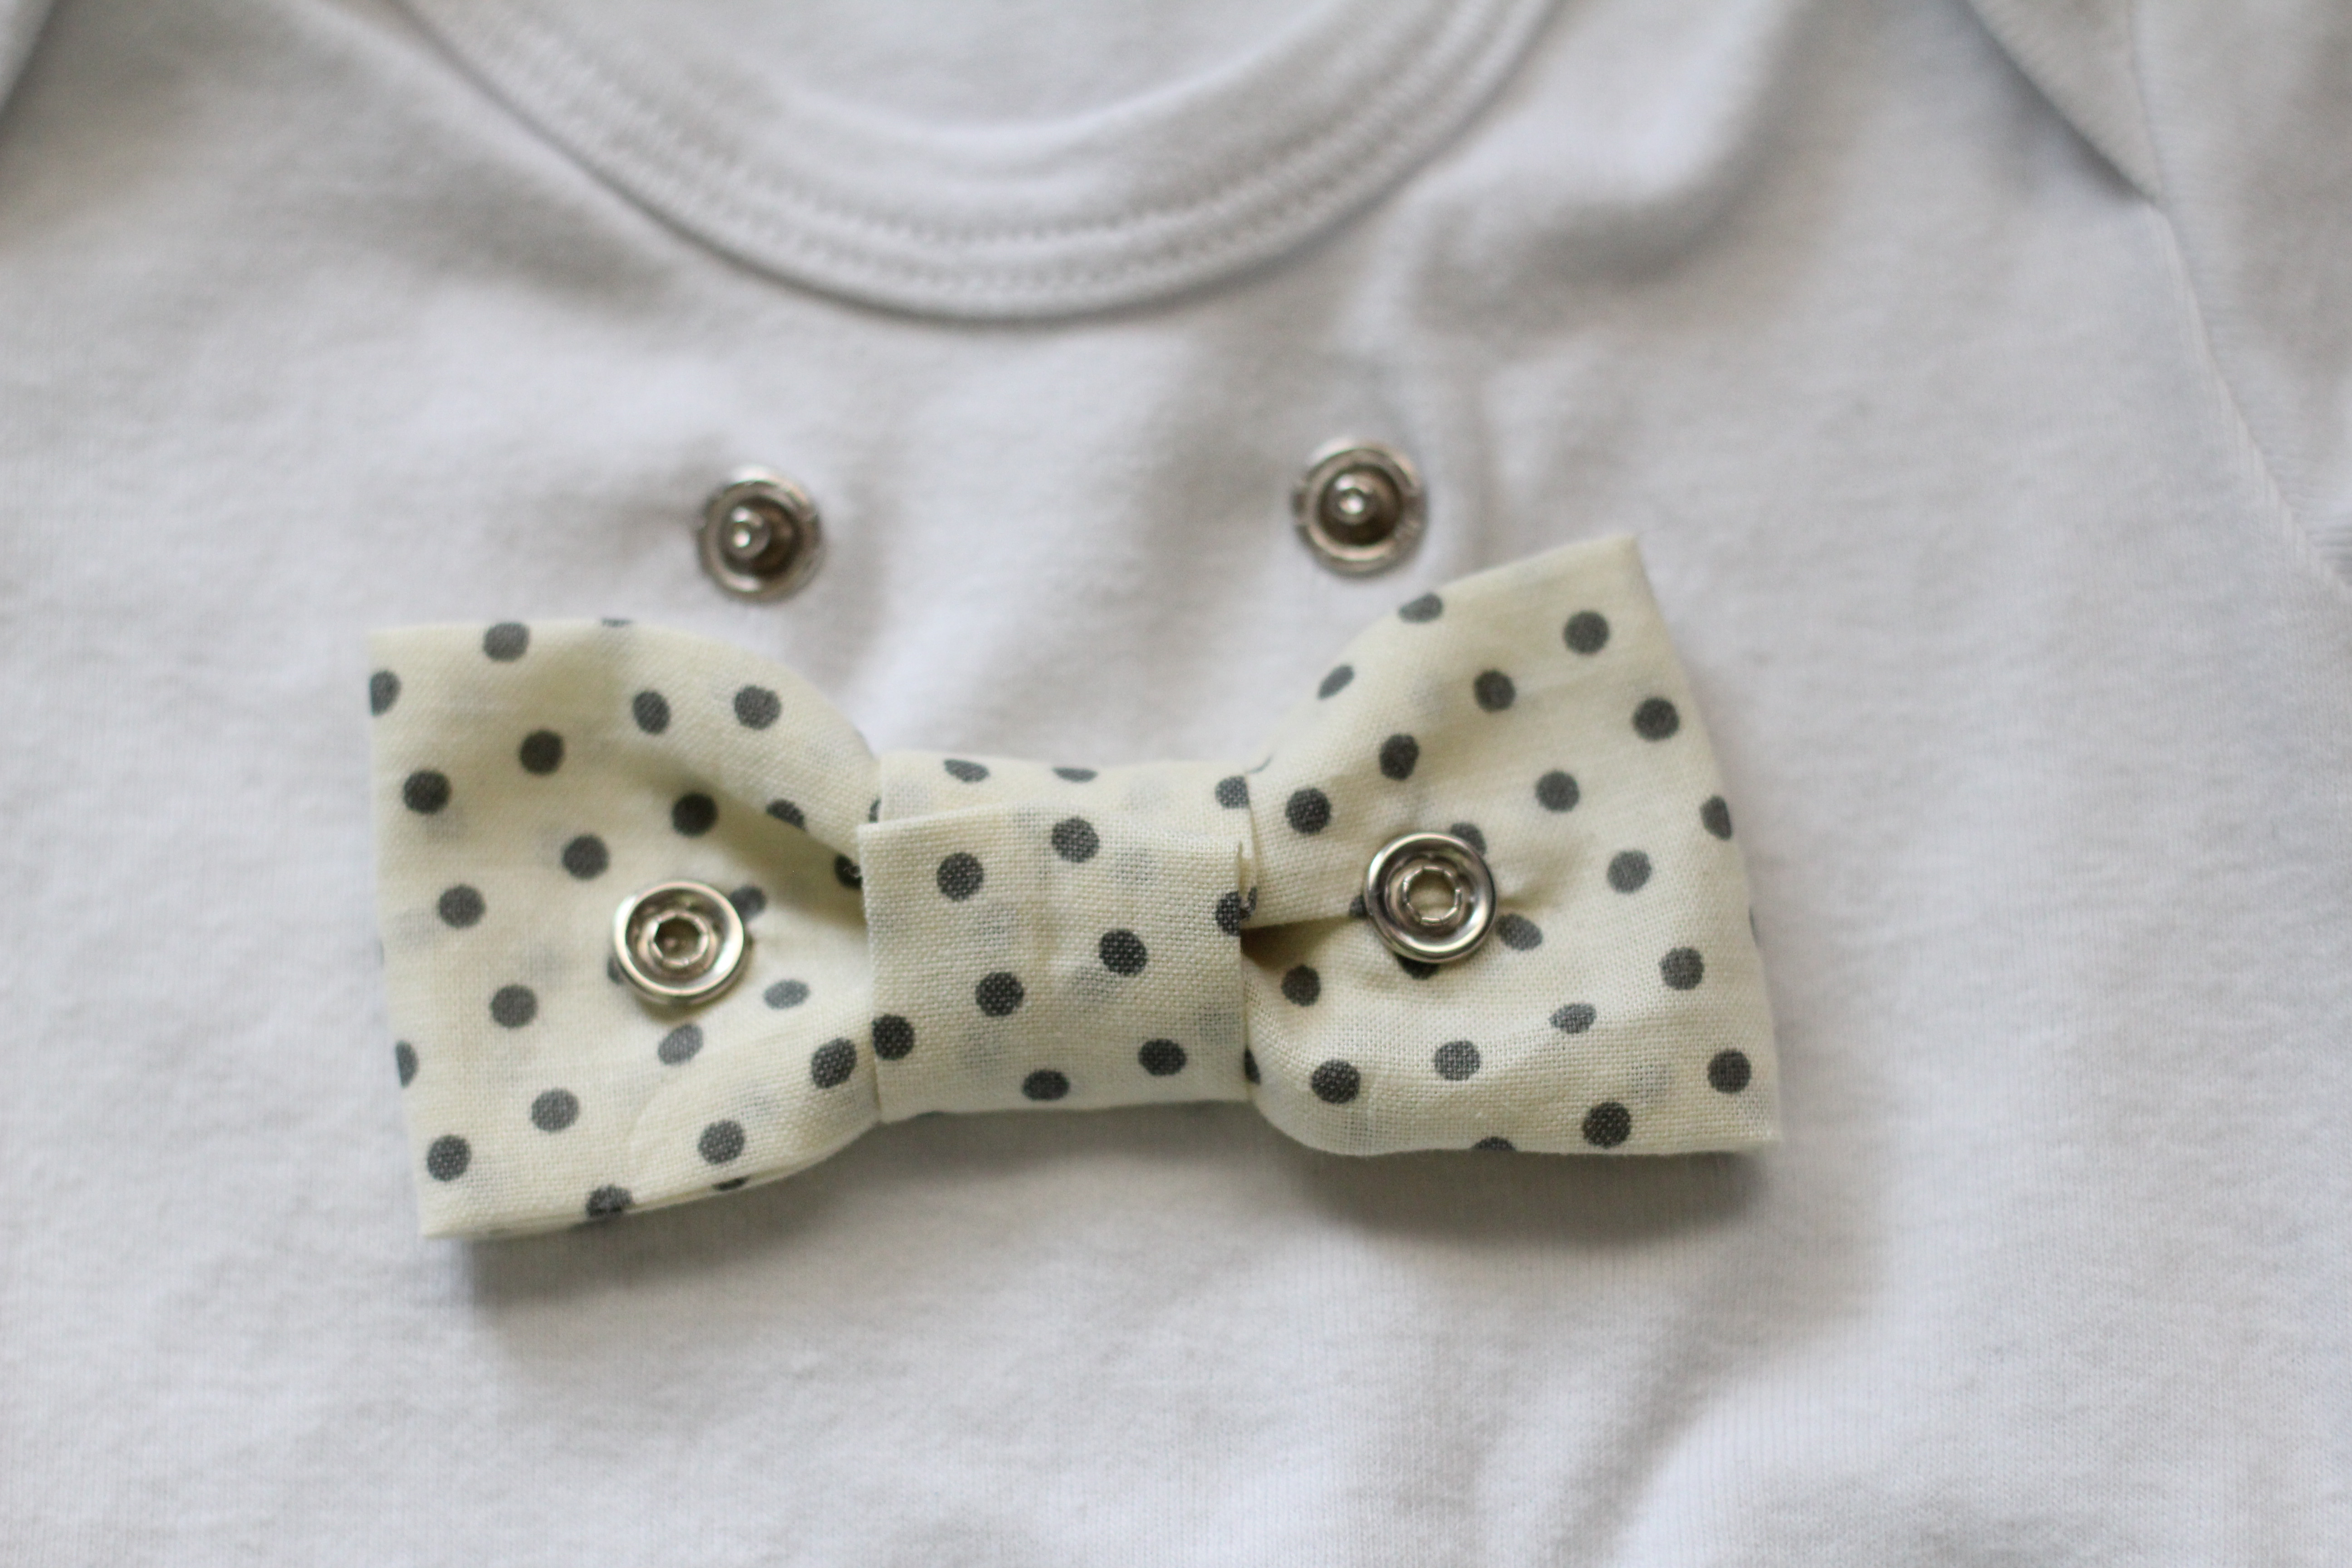 Best ideas about DIY Baby Bow Tie . Save or Pin Baby Bow Tie DIY Now.